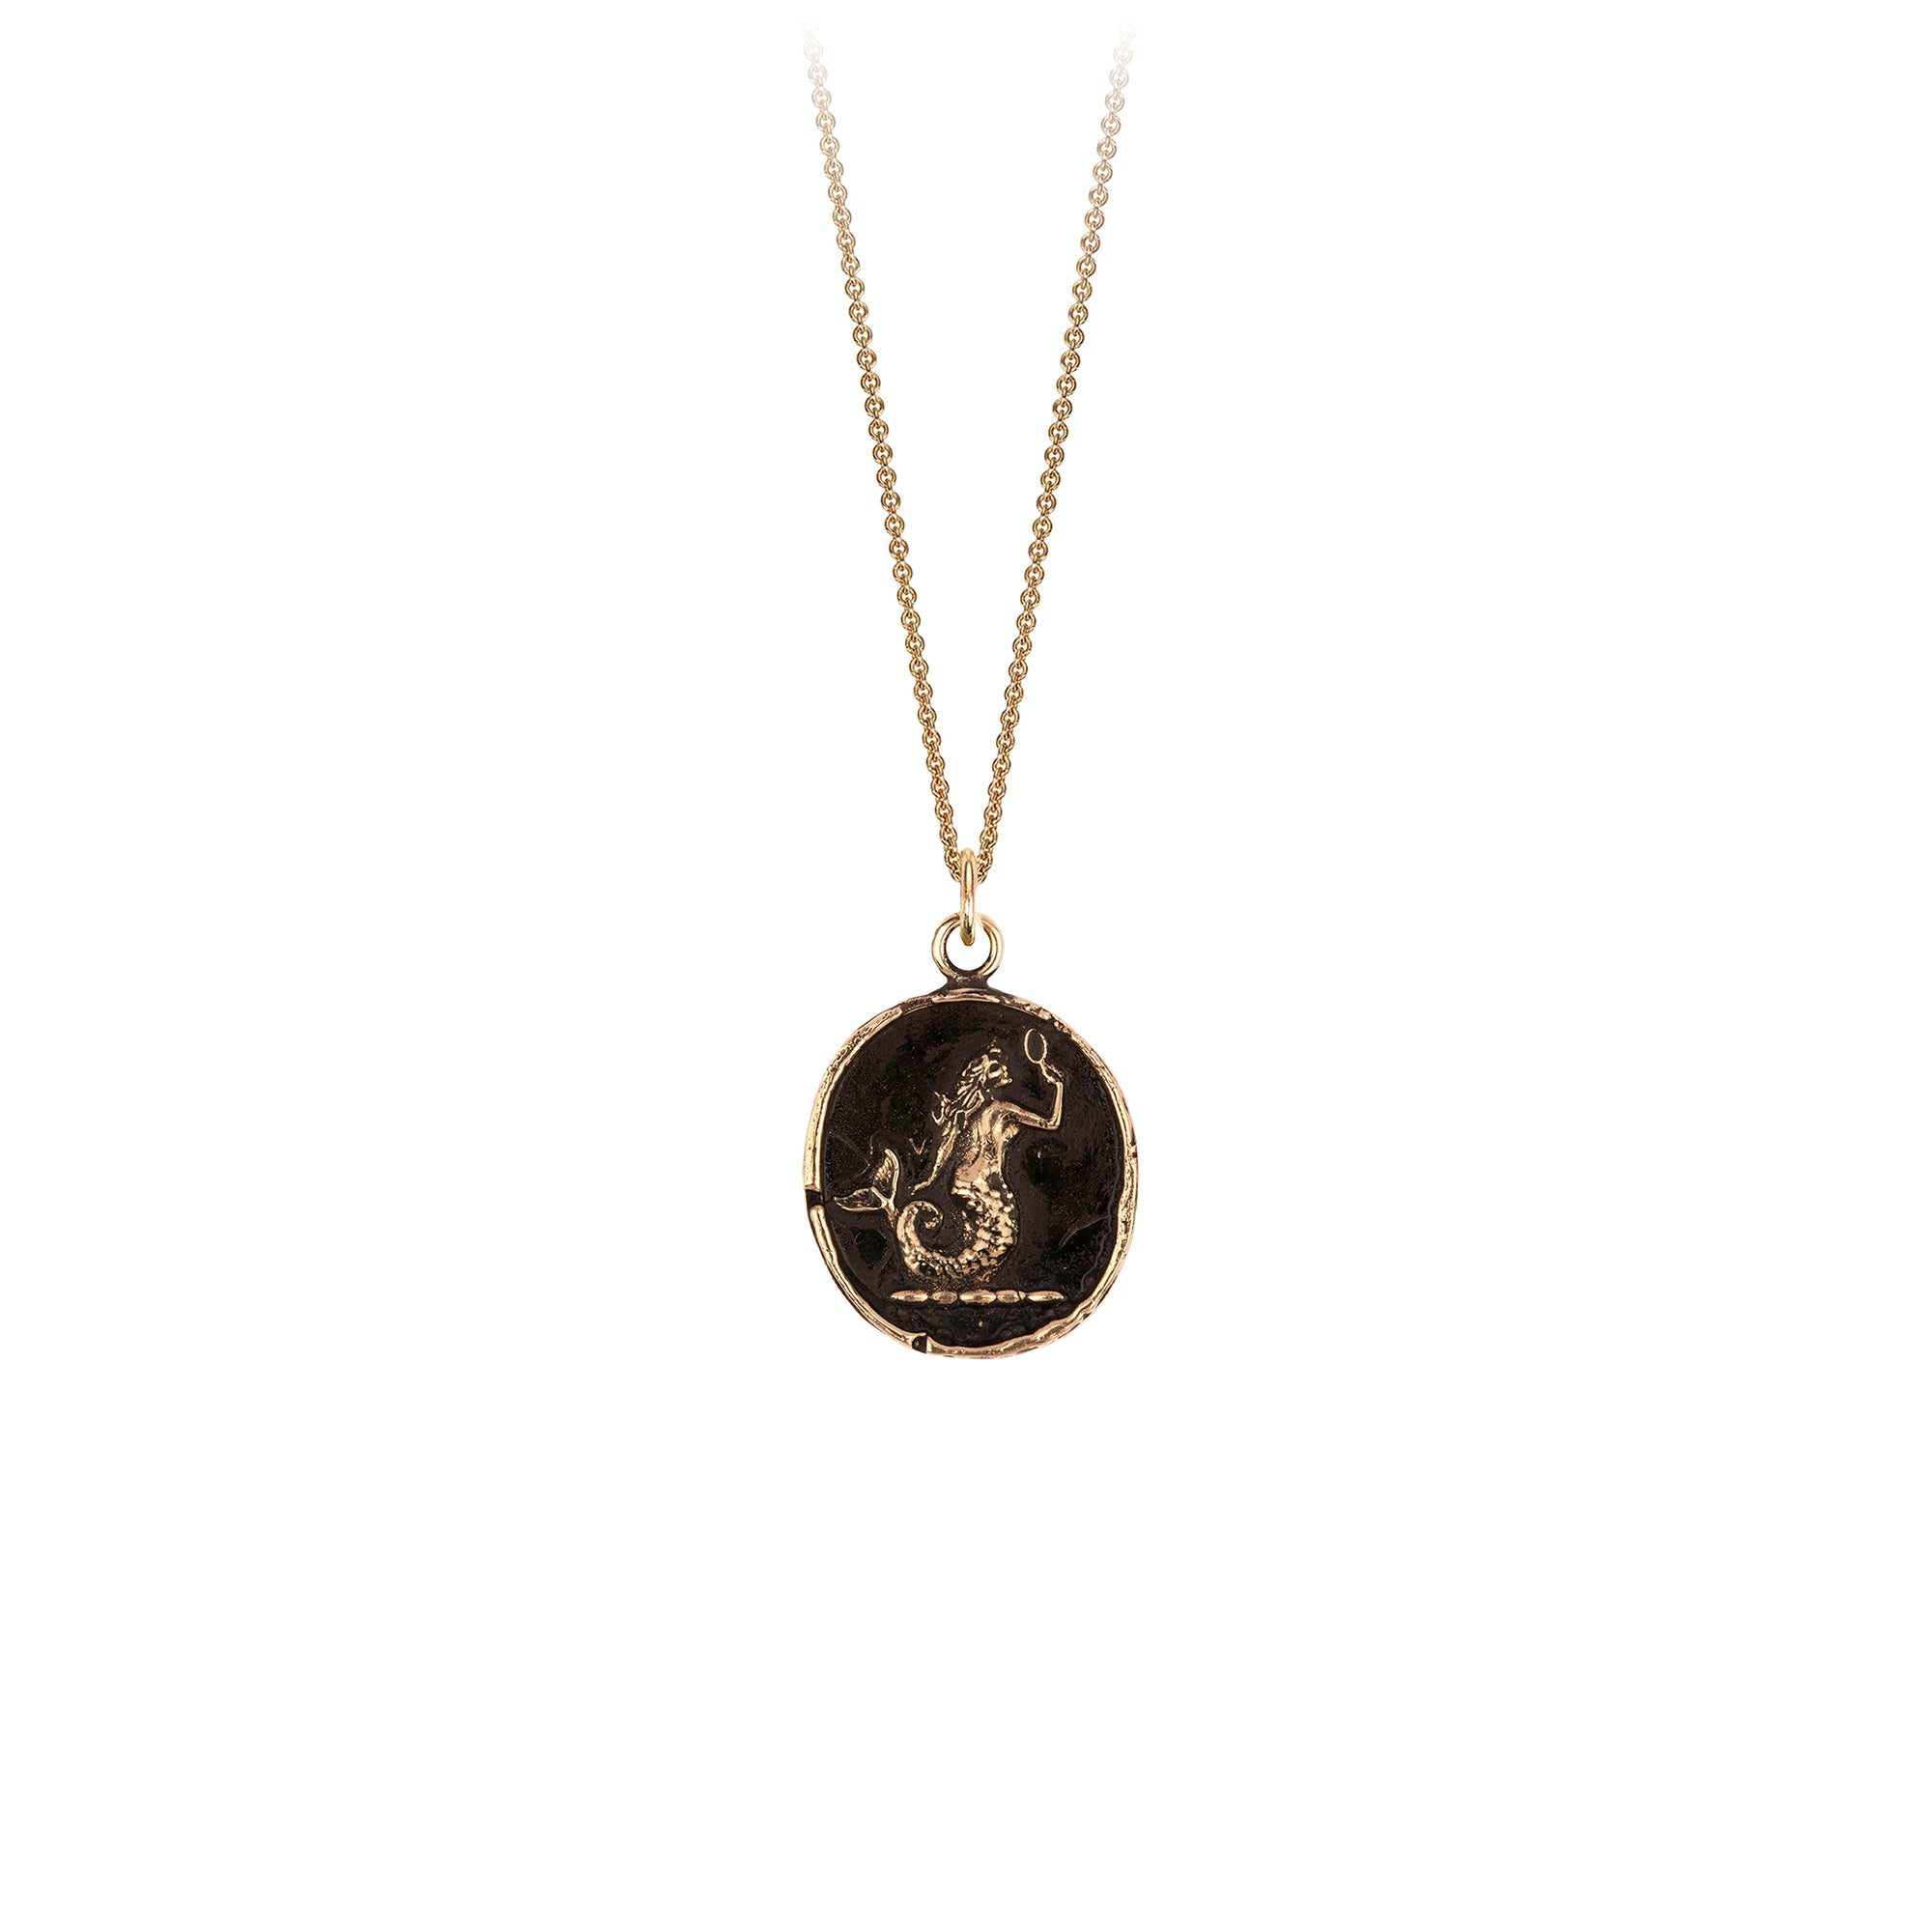 Pyrrha 14K Gold Mermaid Talisman Necklace